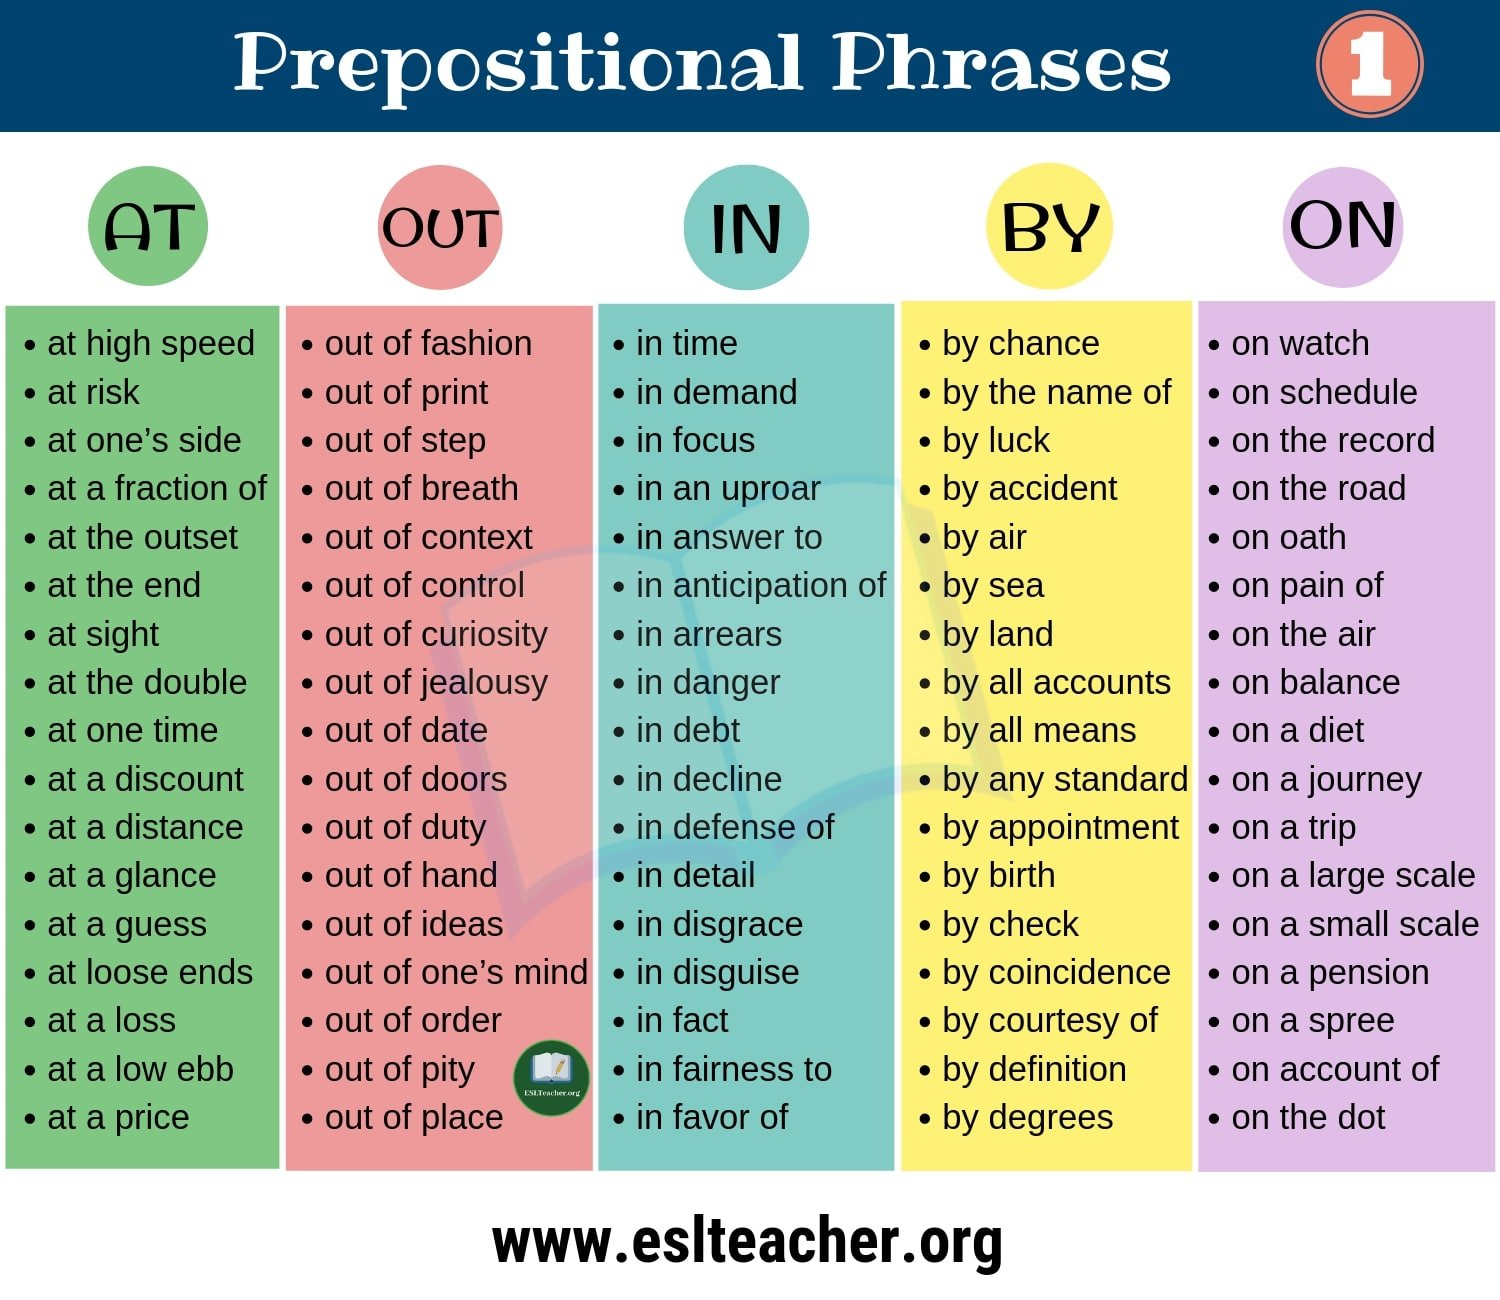 prepositional phrases examples